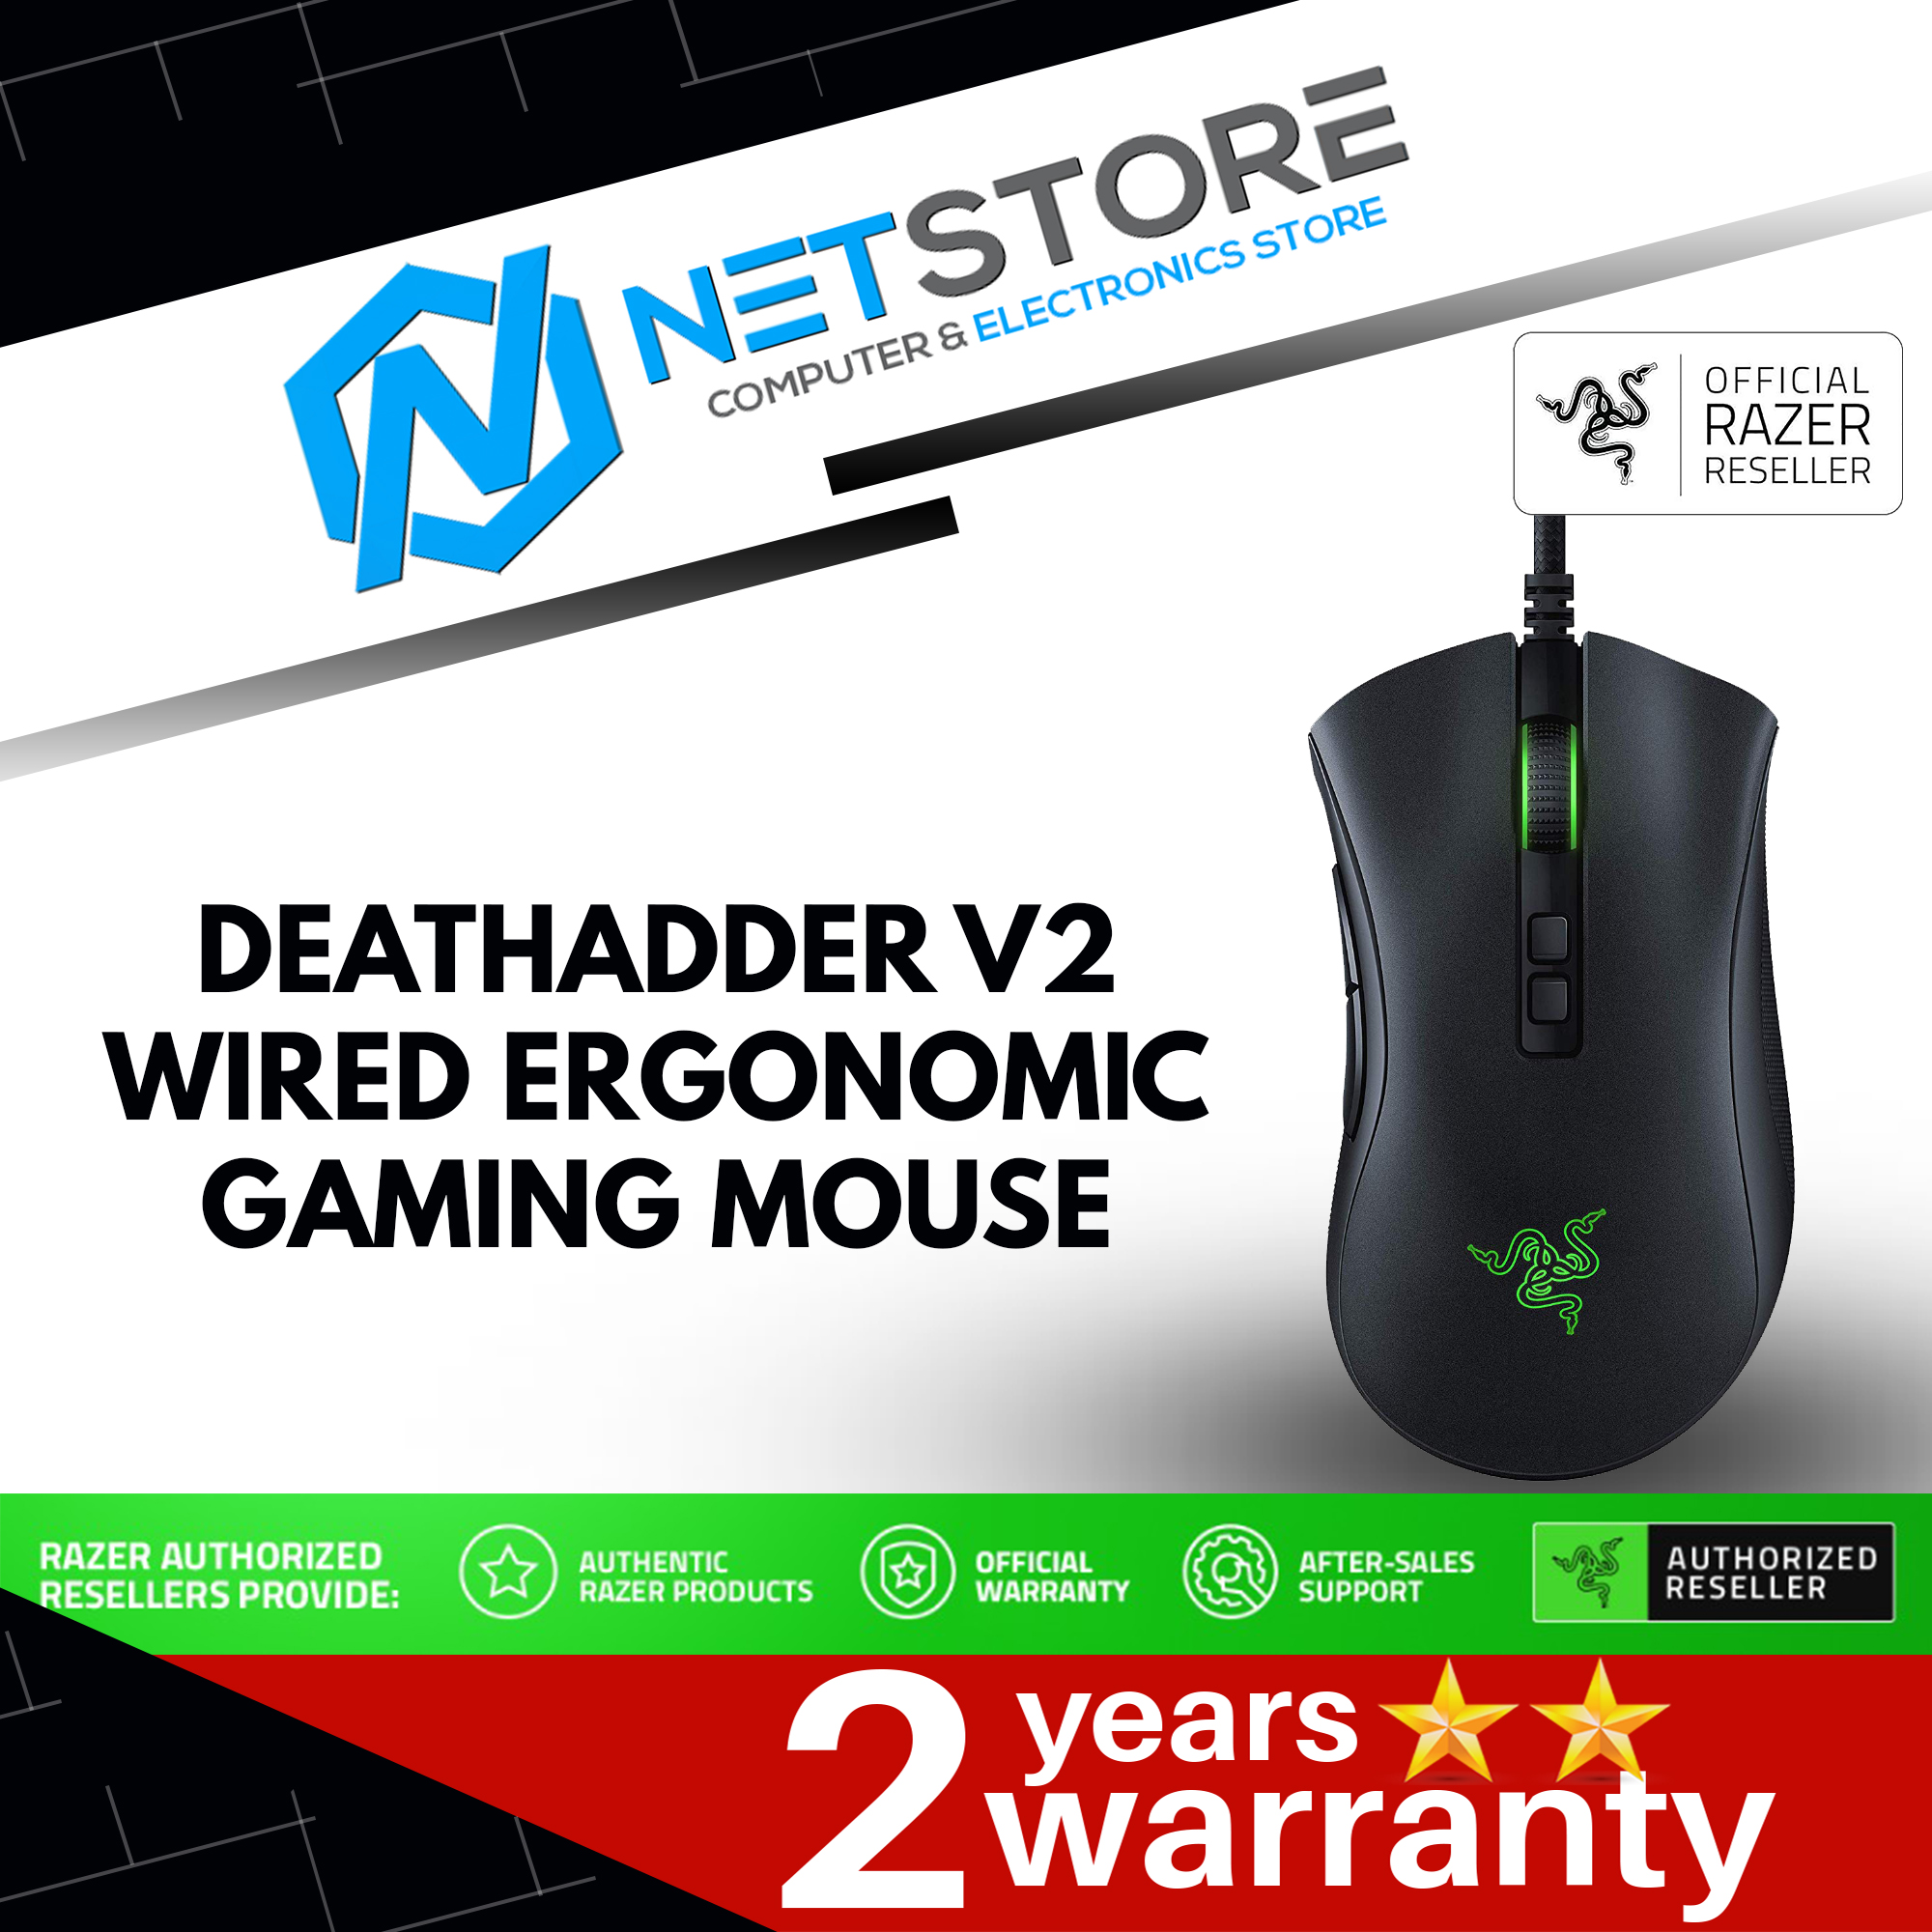 Razer Deathadder V2 Wired Ergonomic Gaming Mouse RZ01-03210100-R3M1